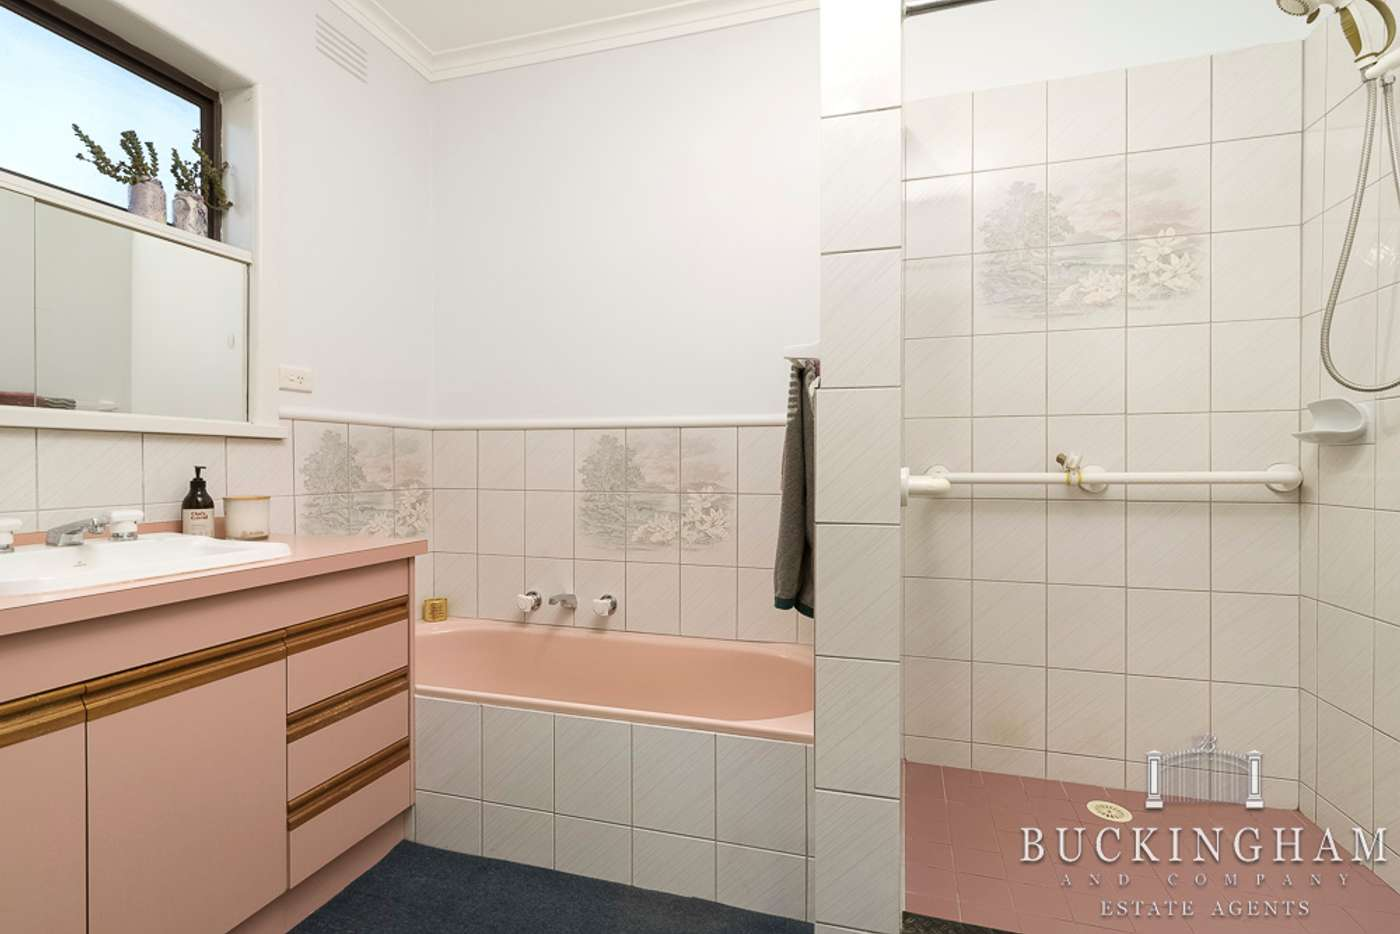 Seventh view of Homely house listing, 58 Ladd Street, Watsonia VIC 3087